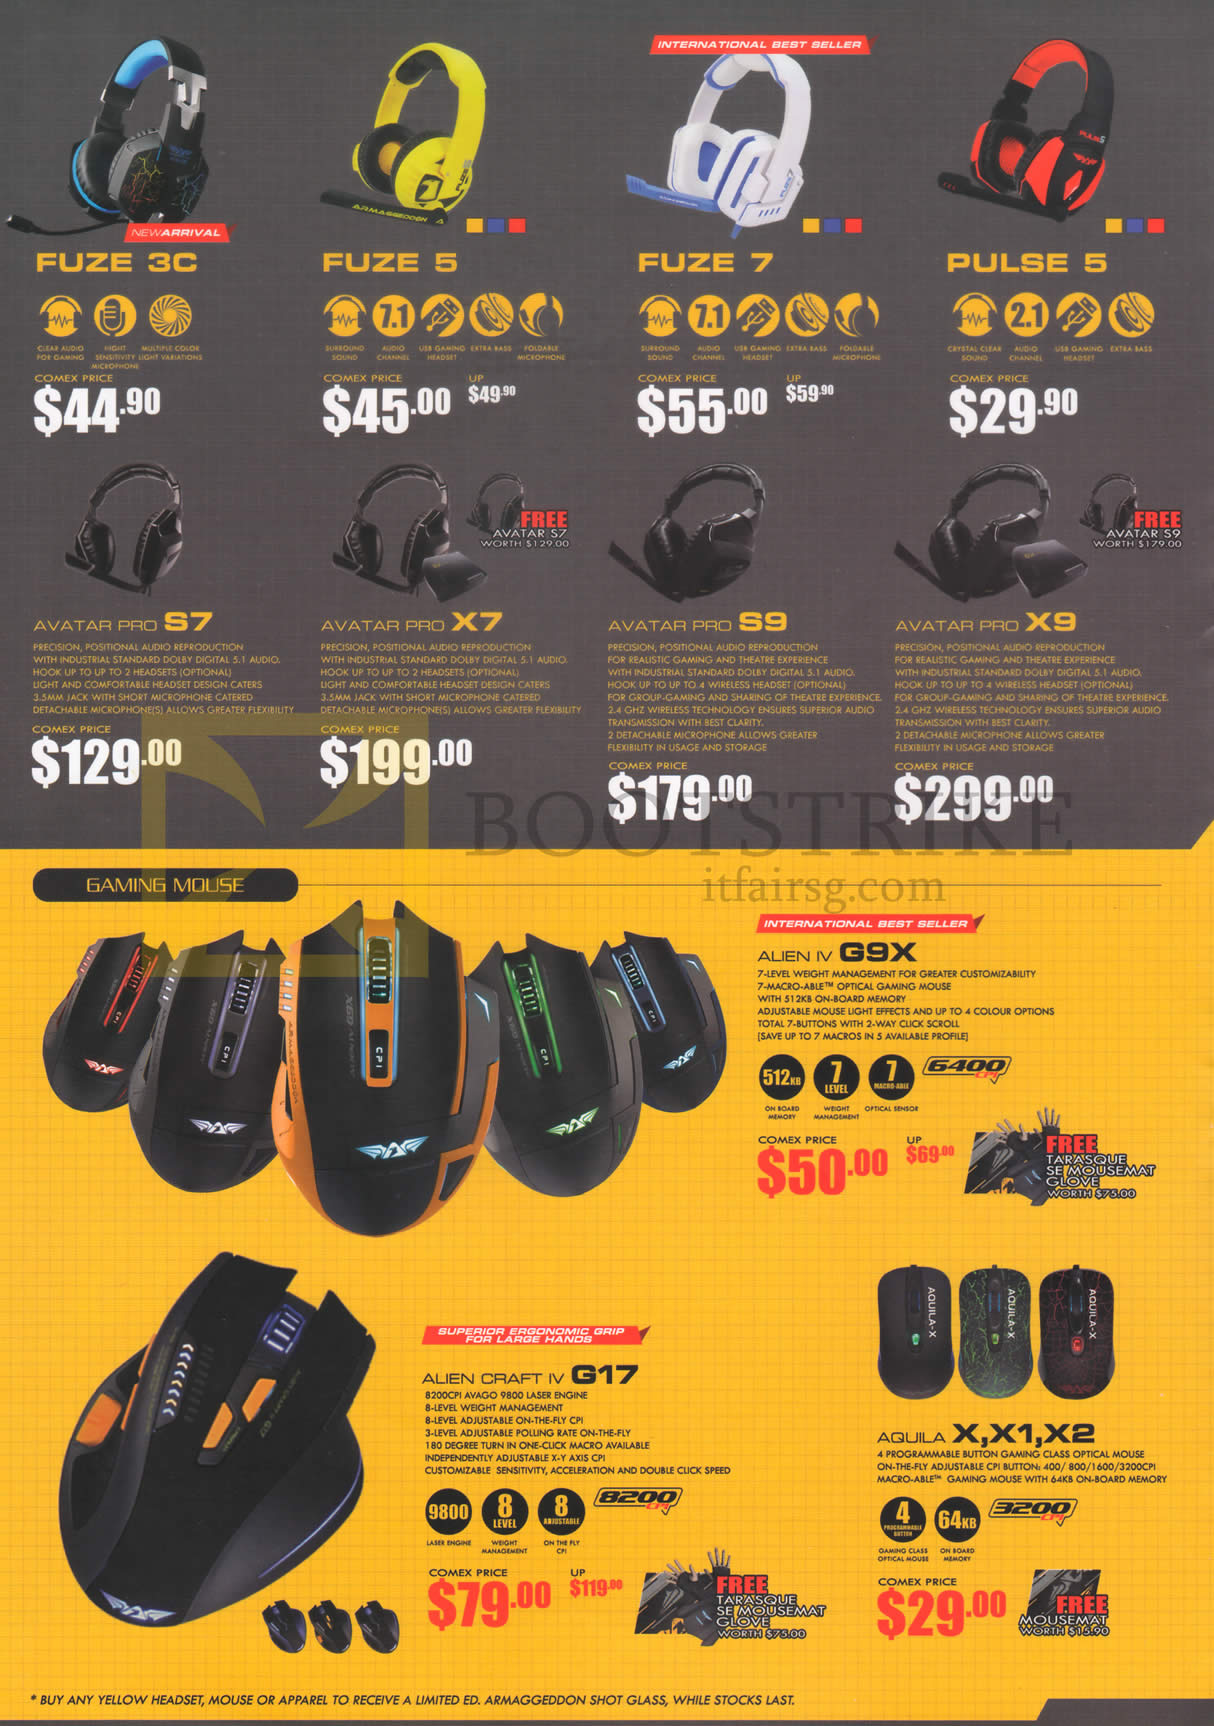 COMEX 2015 price list image brochure of Armaggeddon Gaming Headsets Fuze 3C, 5, 7, Pulse 5, Avatar Pro S7, X7, S9, X9, Gaming Mouse Alien IV G9X, Alien Craft IV G17, Aquila X, X1, X2